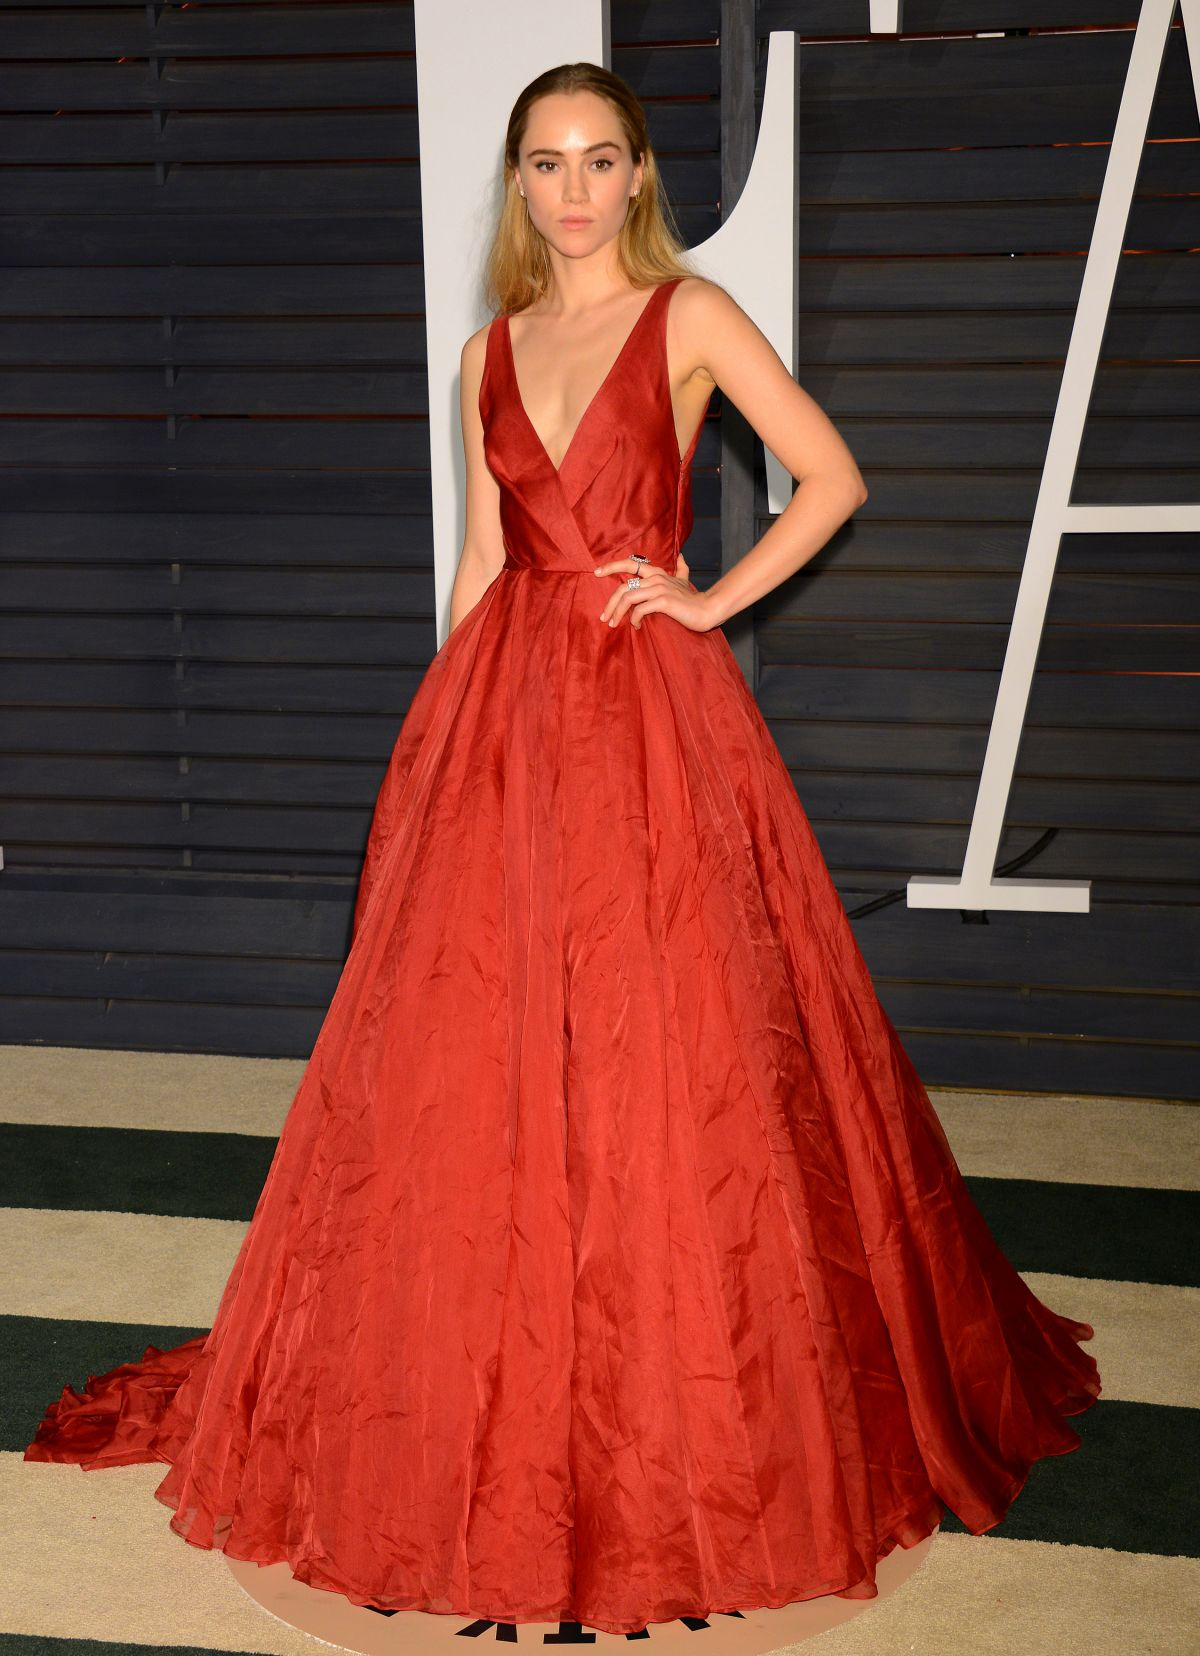 Suki Waterhouse At Vanity Fair Oscar Party - Celebzz - Celebzz